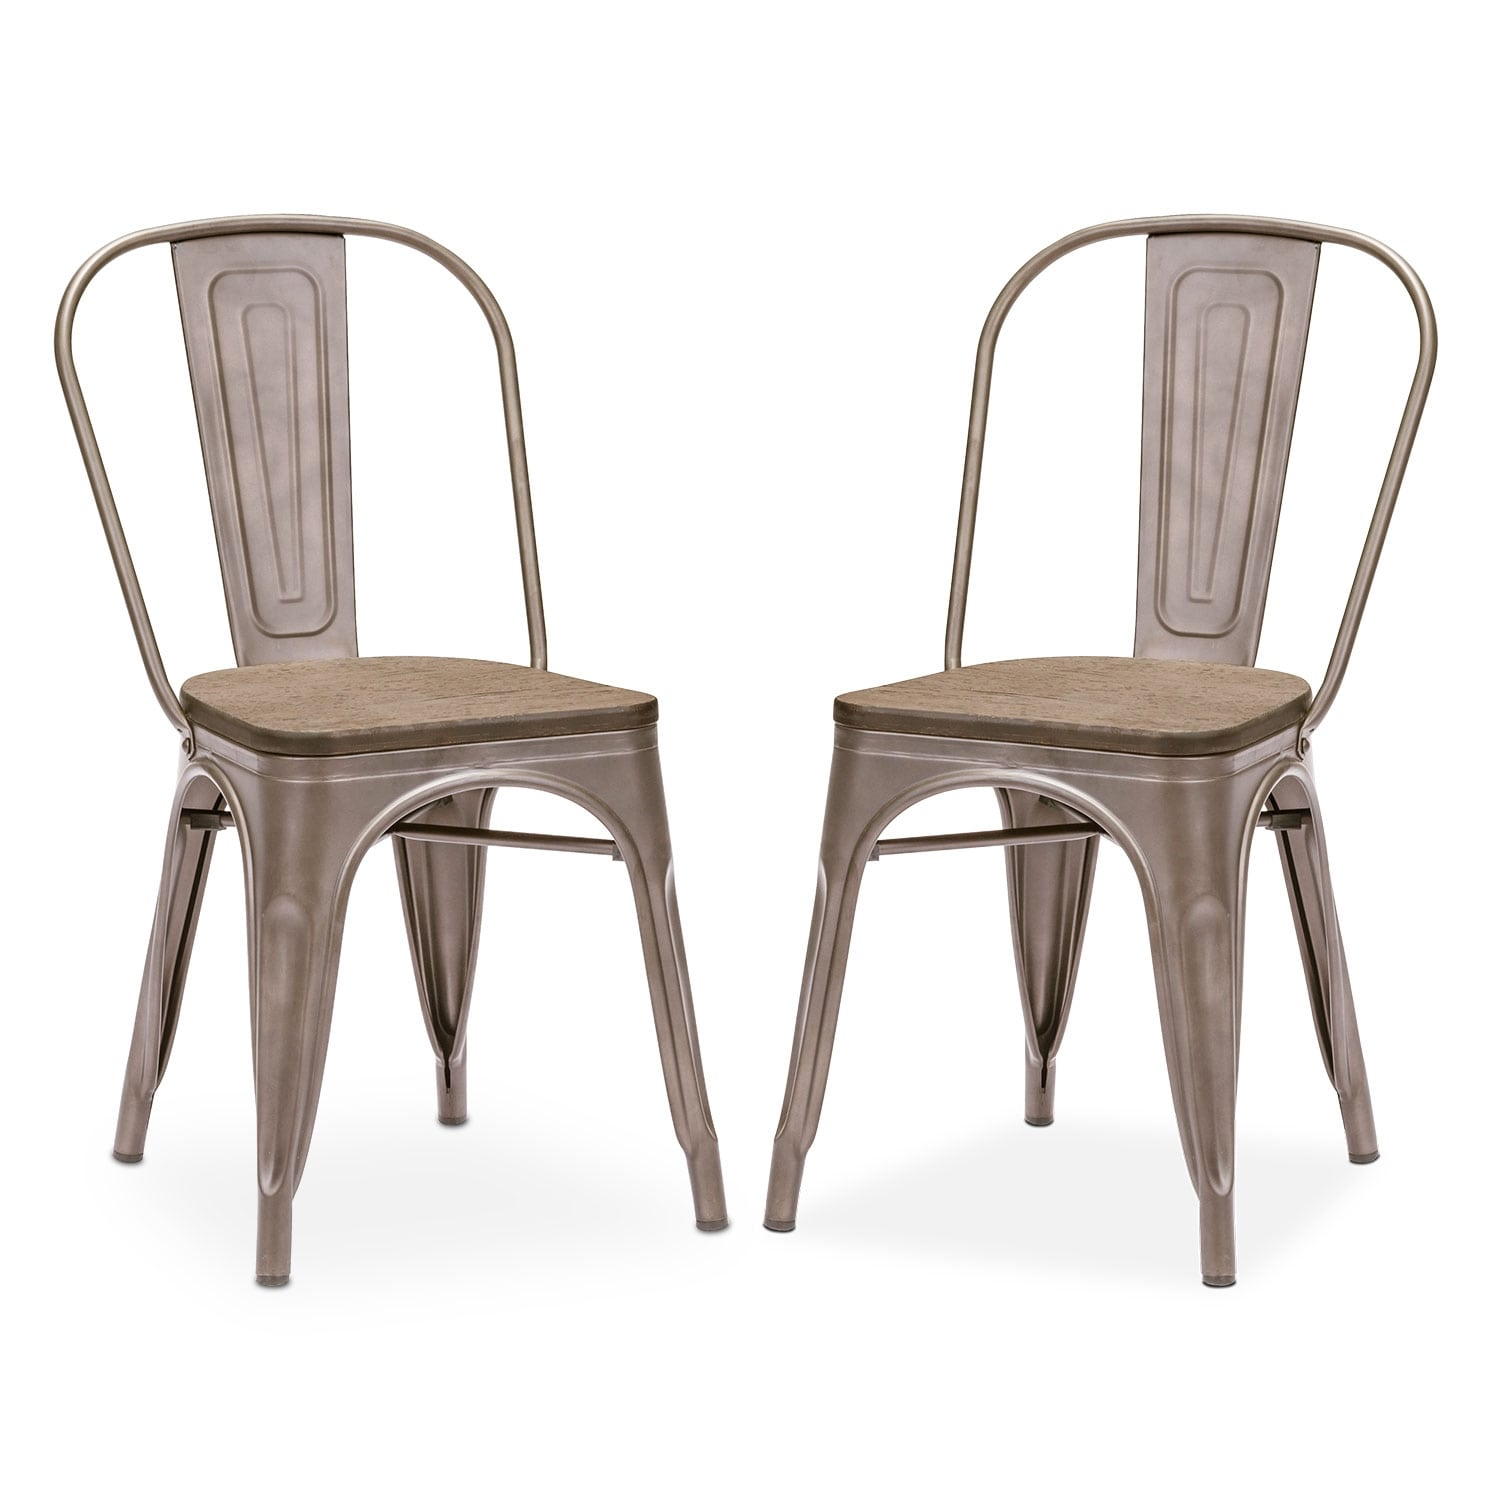 [Rustica 2-Pack Chairs]